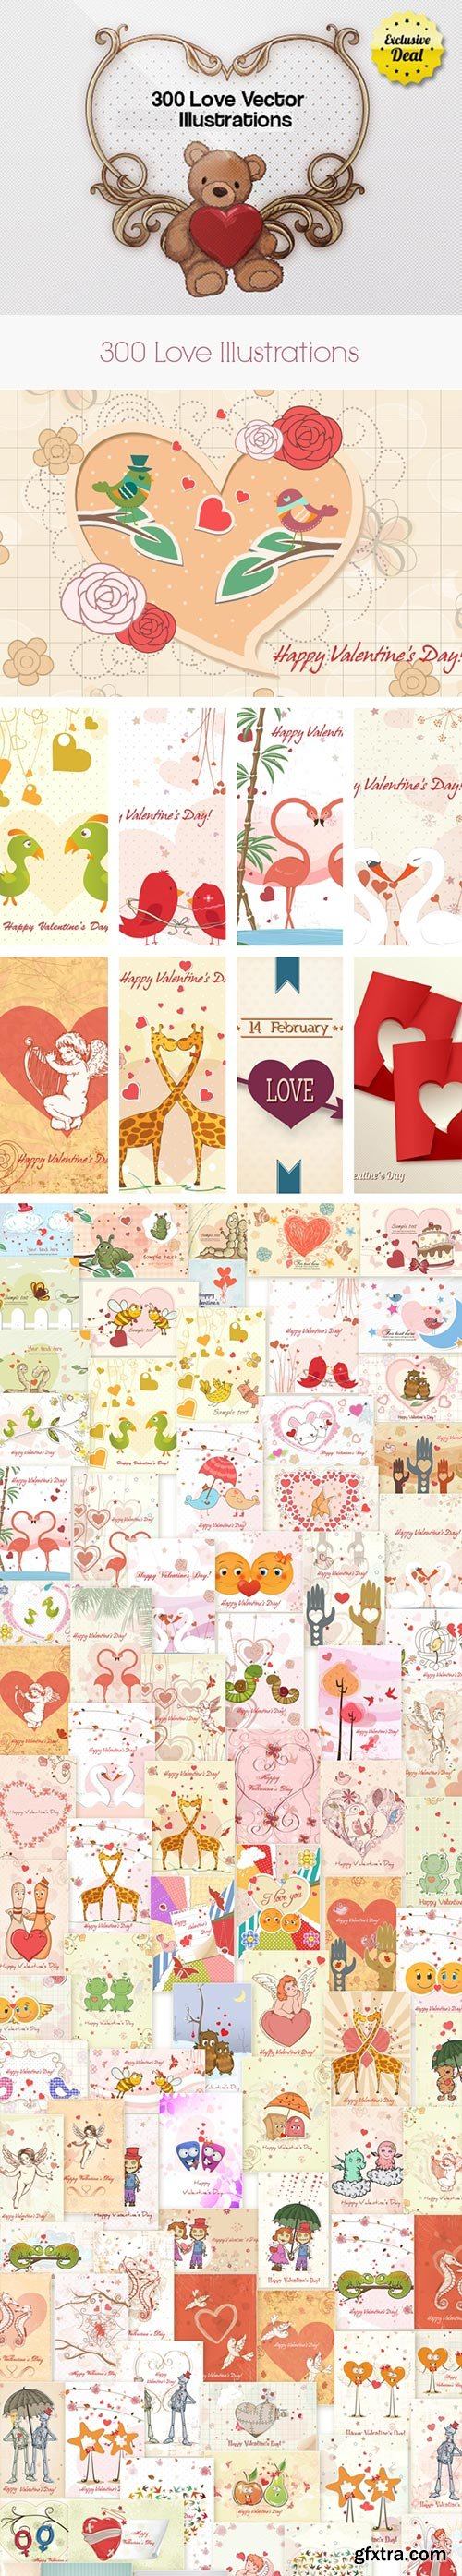 300 Love Vector Illustrations